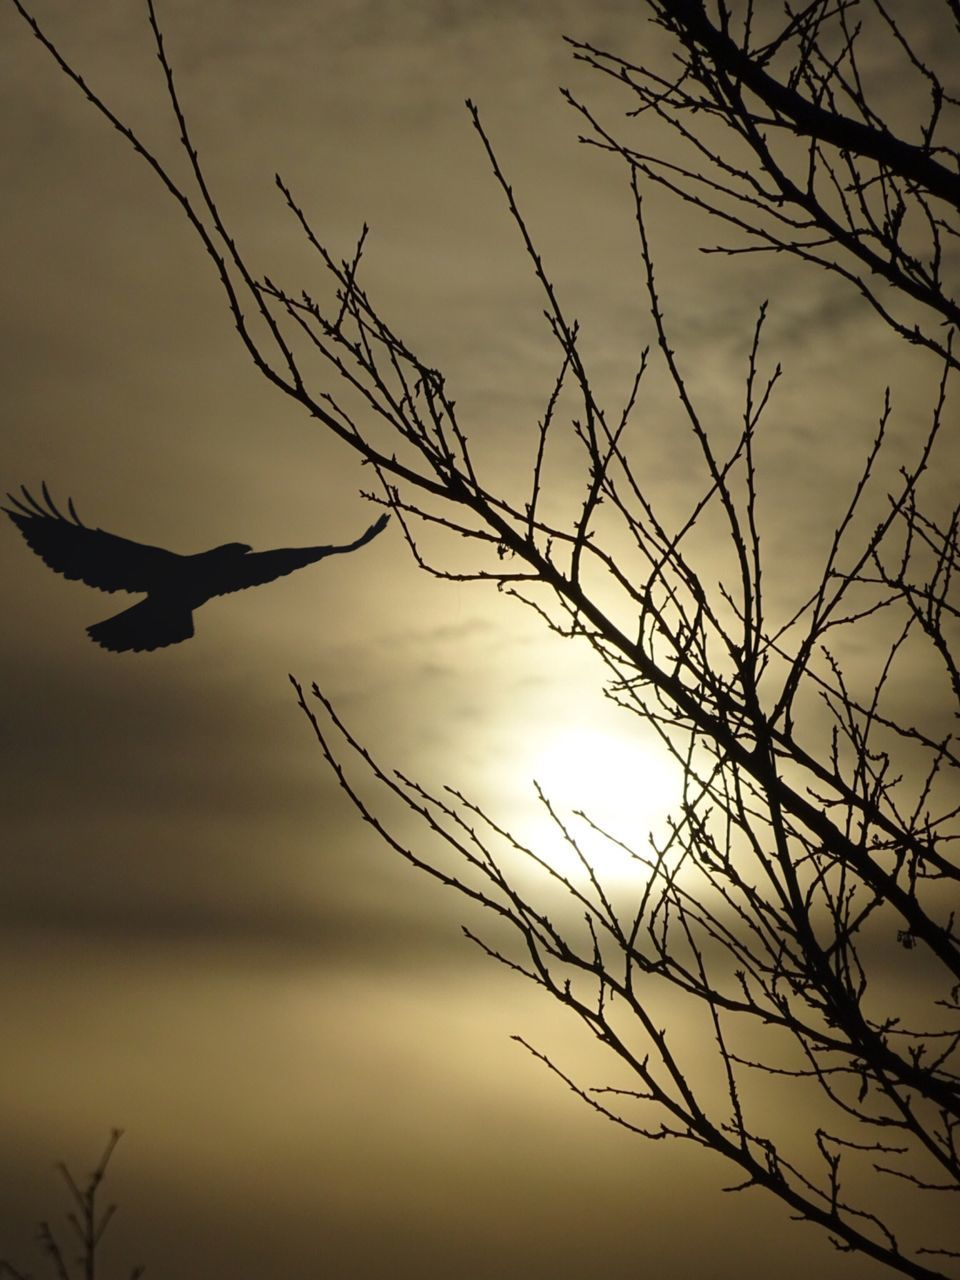 nature, silhouette, sky, low angle view, beauty in nature, sunset, tranquility, bird, no people, outdoors, tranquil scene, cloud - sky, branch, animal themes, bare tree, flying, animals in the wild, scenics, tree, spread wings, day